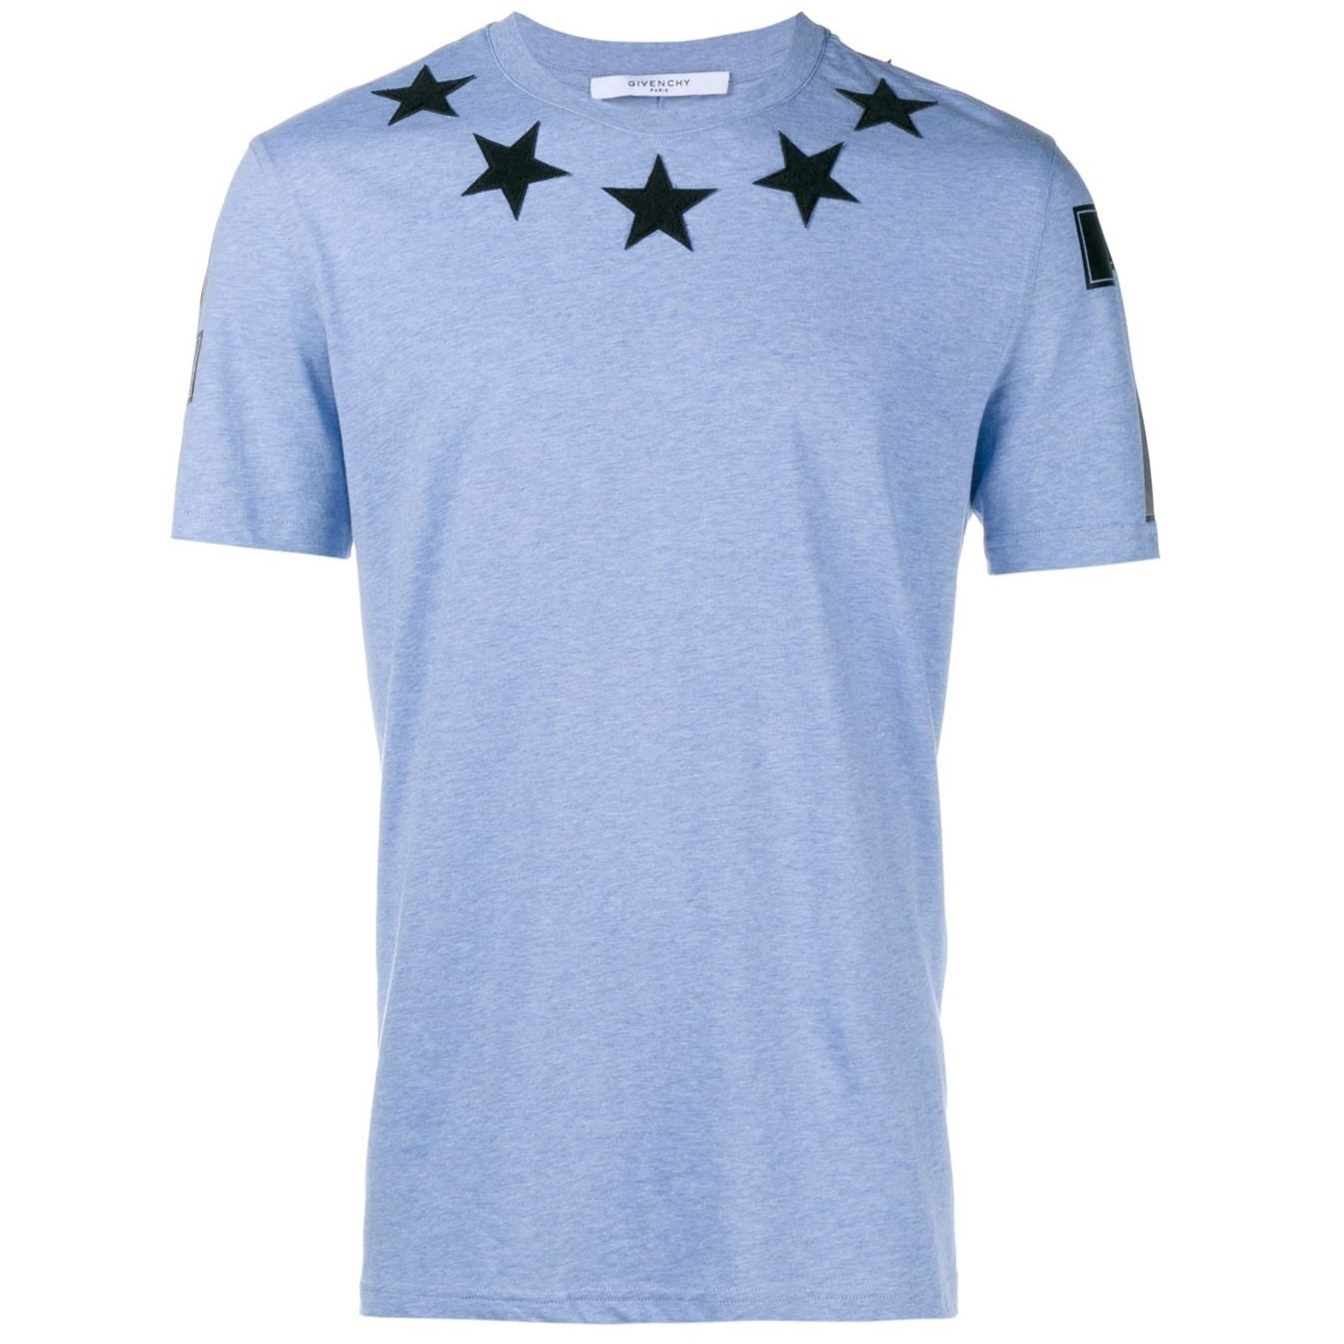 Givenchy star tee tshirt star patch t shirt buyma for Givenchy star t shirt